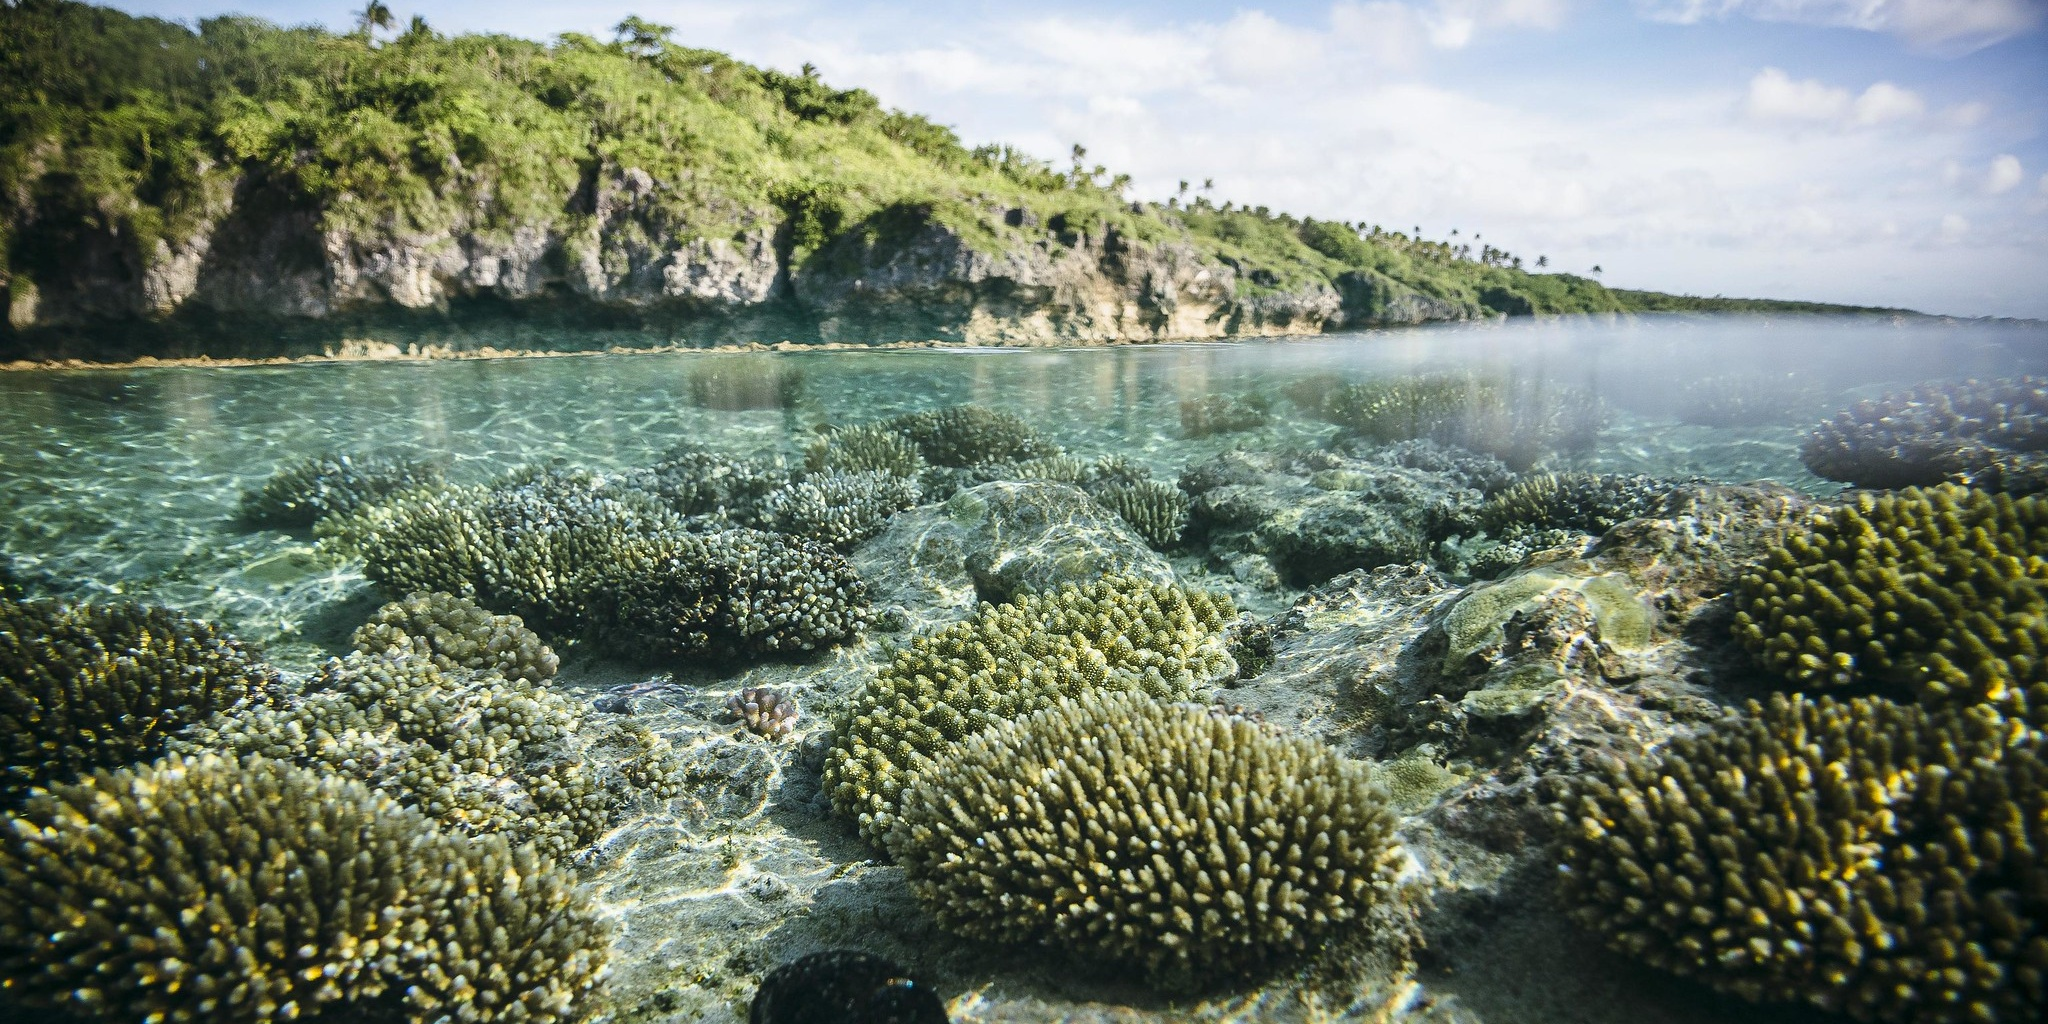 coral and land biodiversity